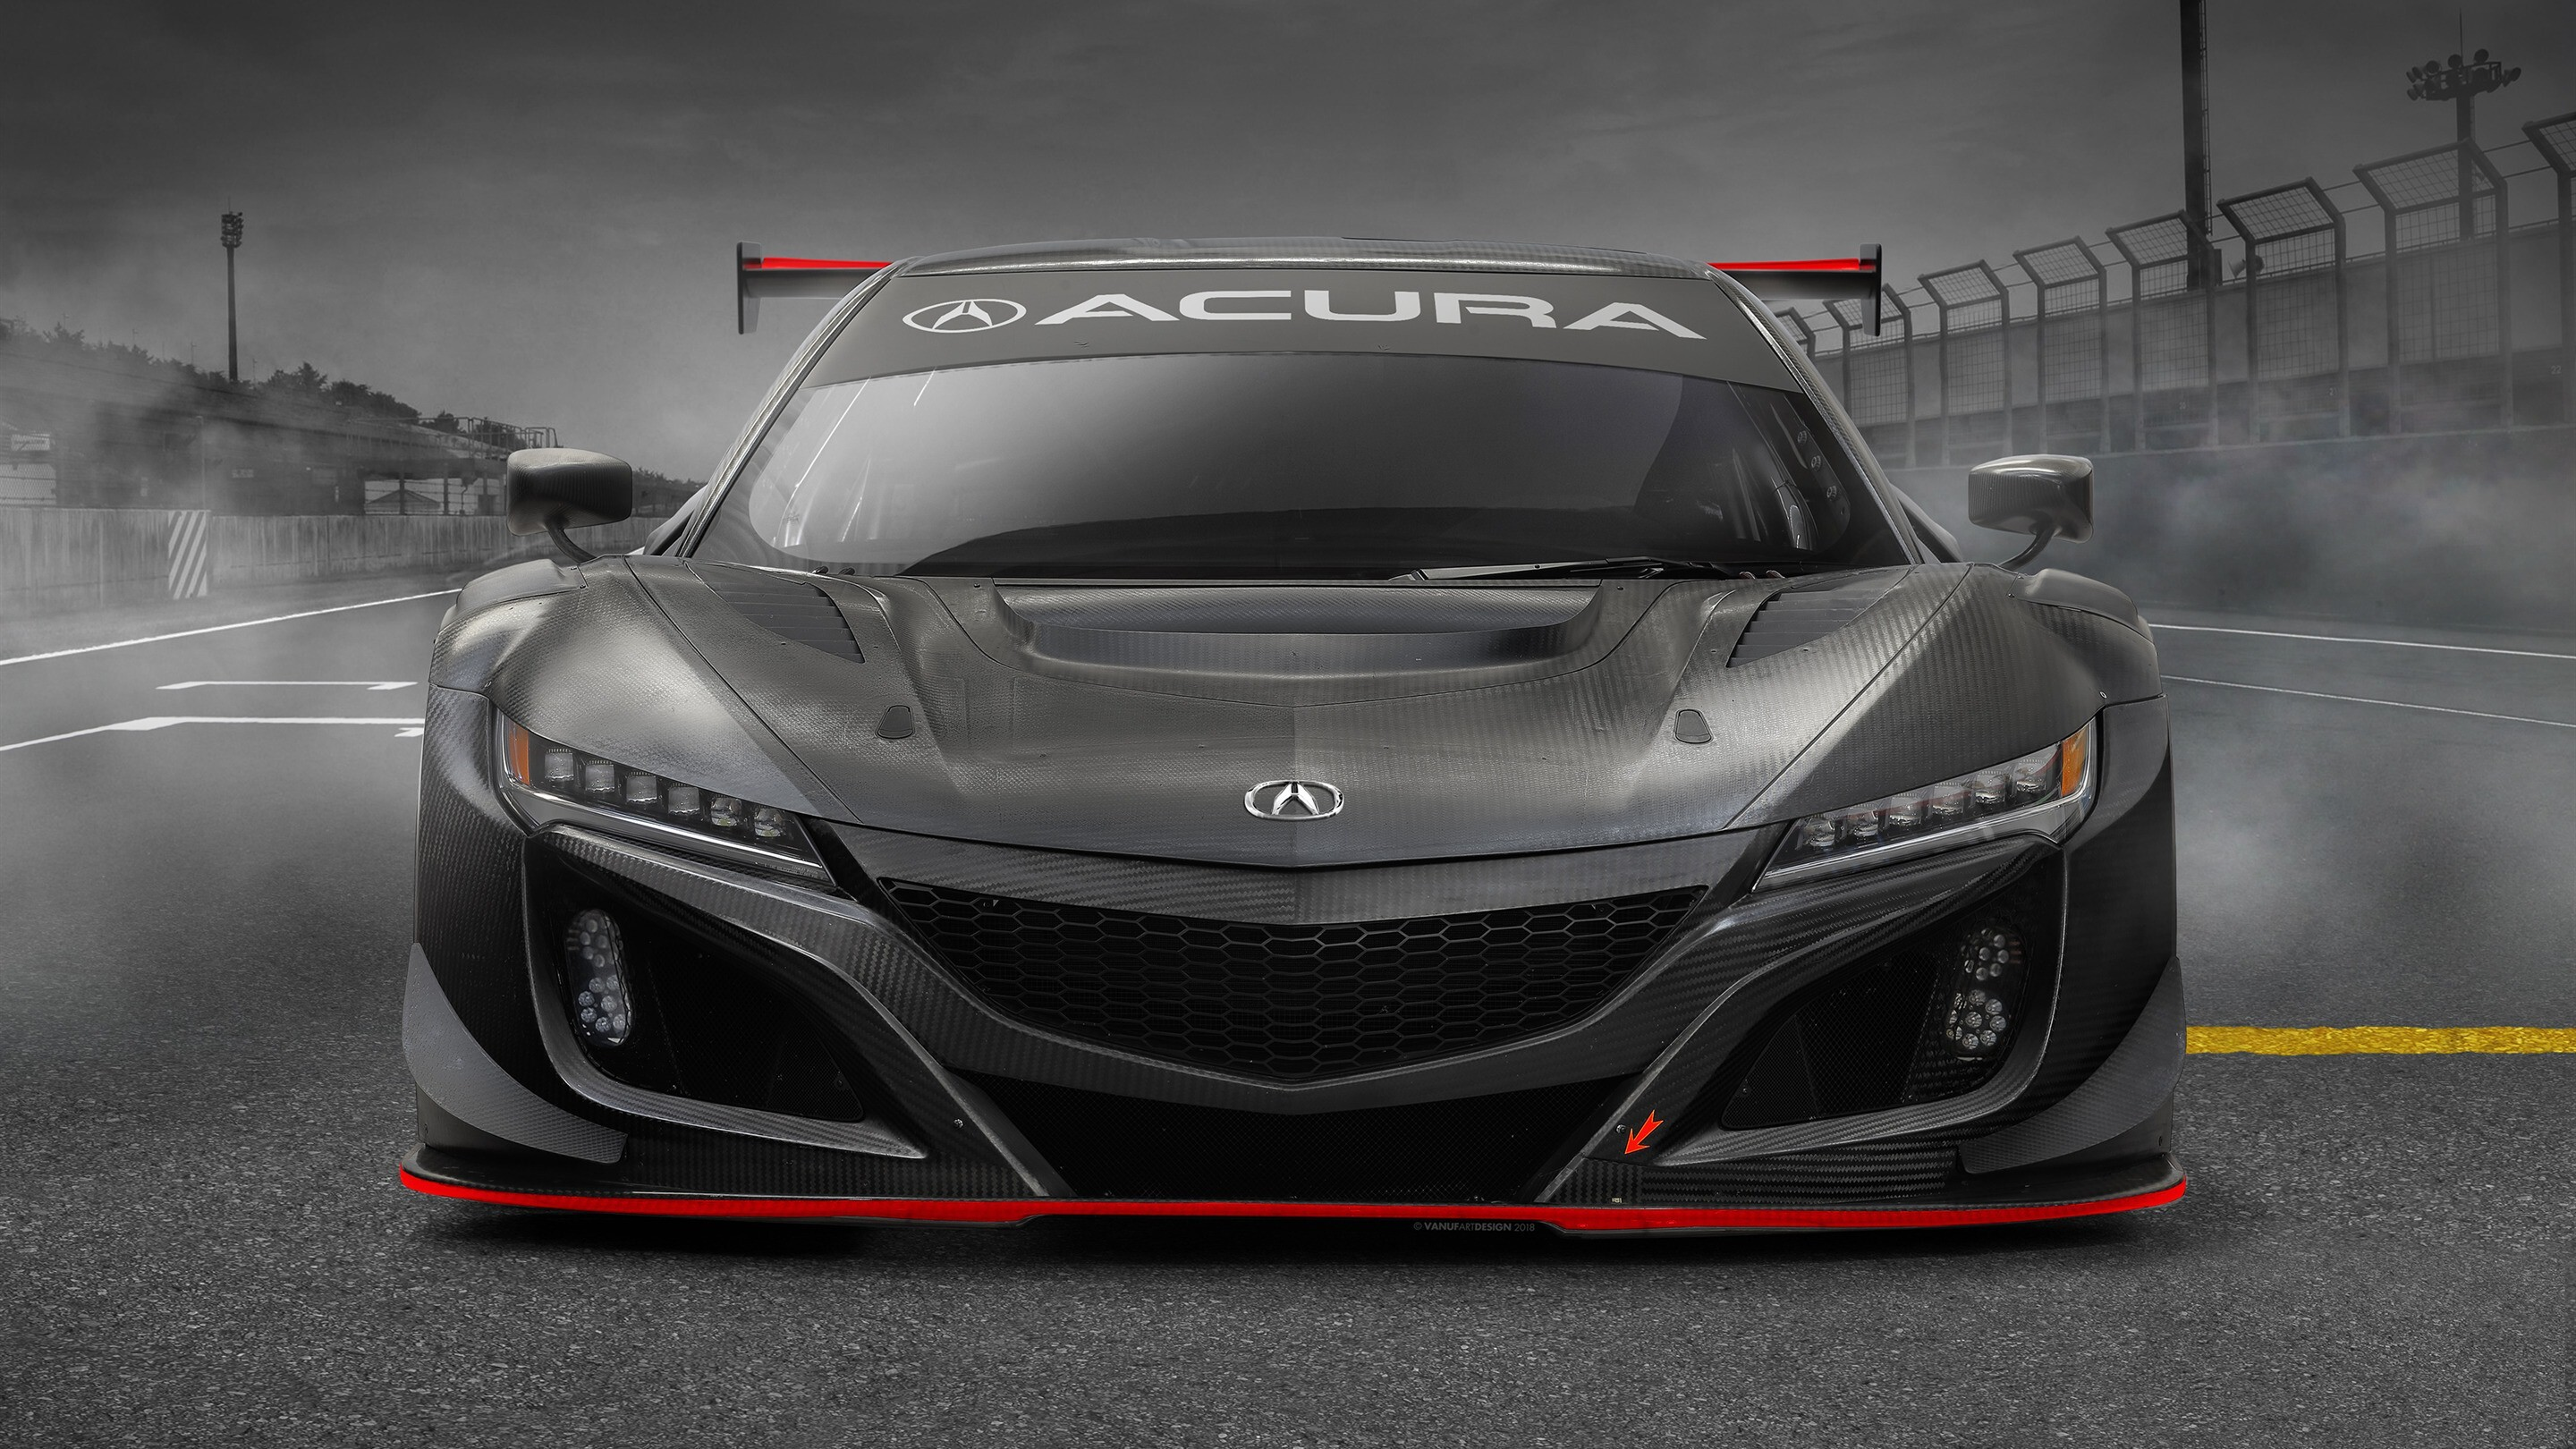 2019 Upcoming Acura Nsx Gt3 Evo Car Hd Wallpapers